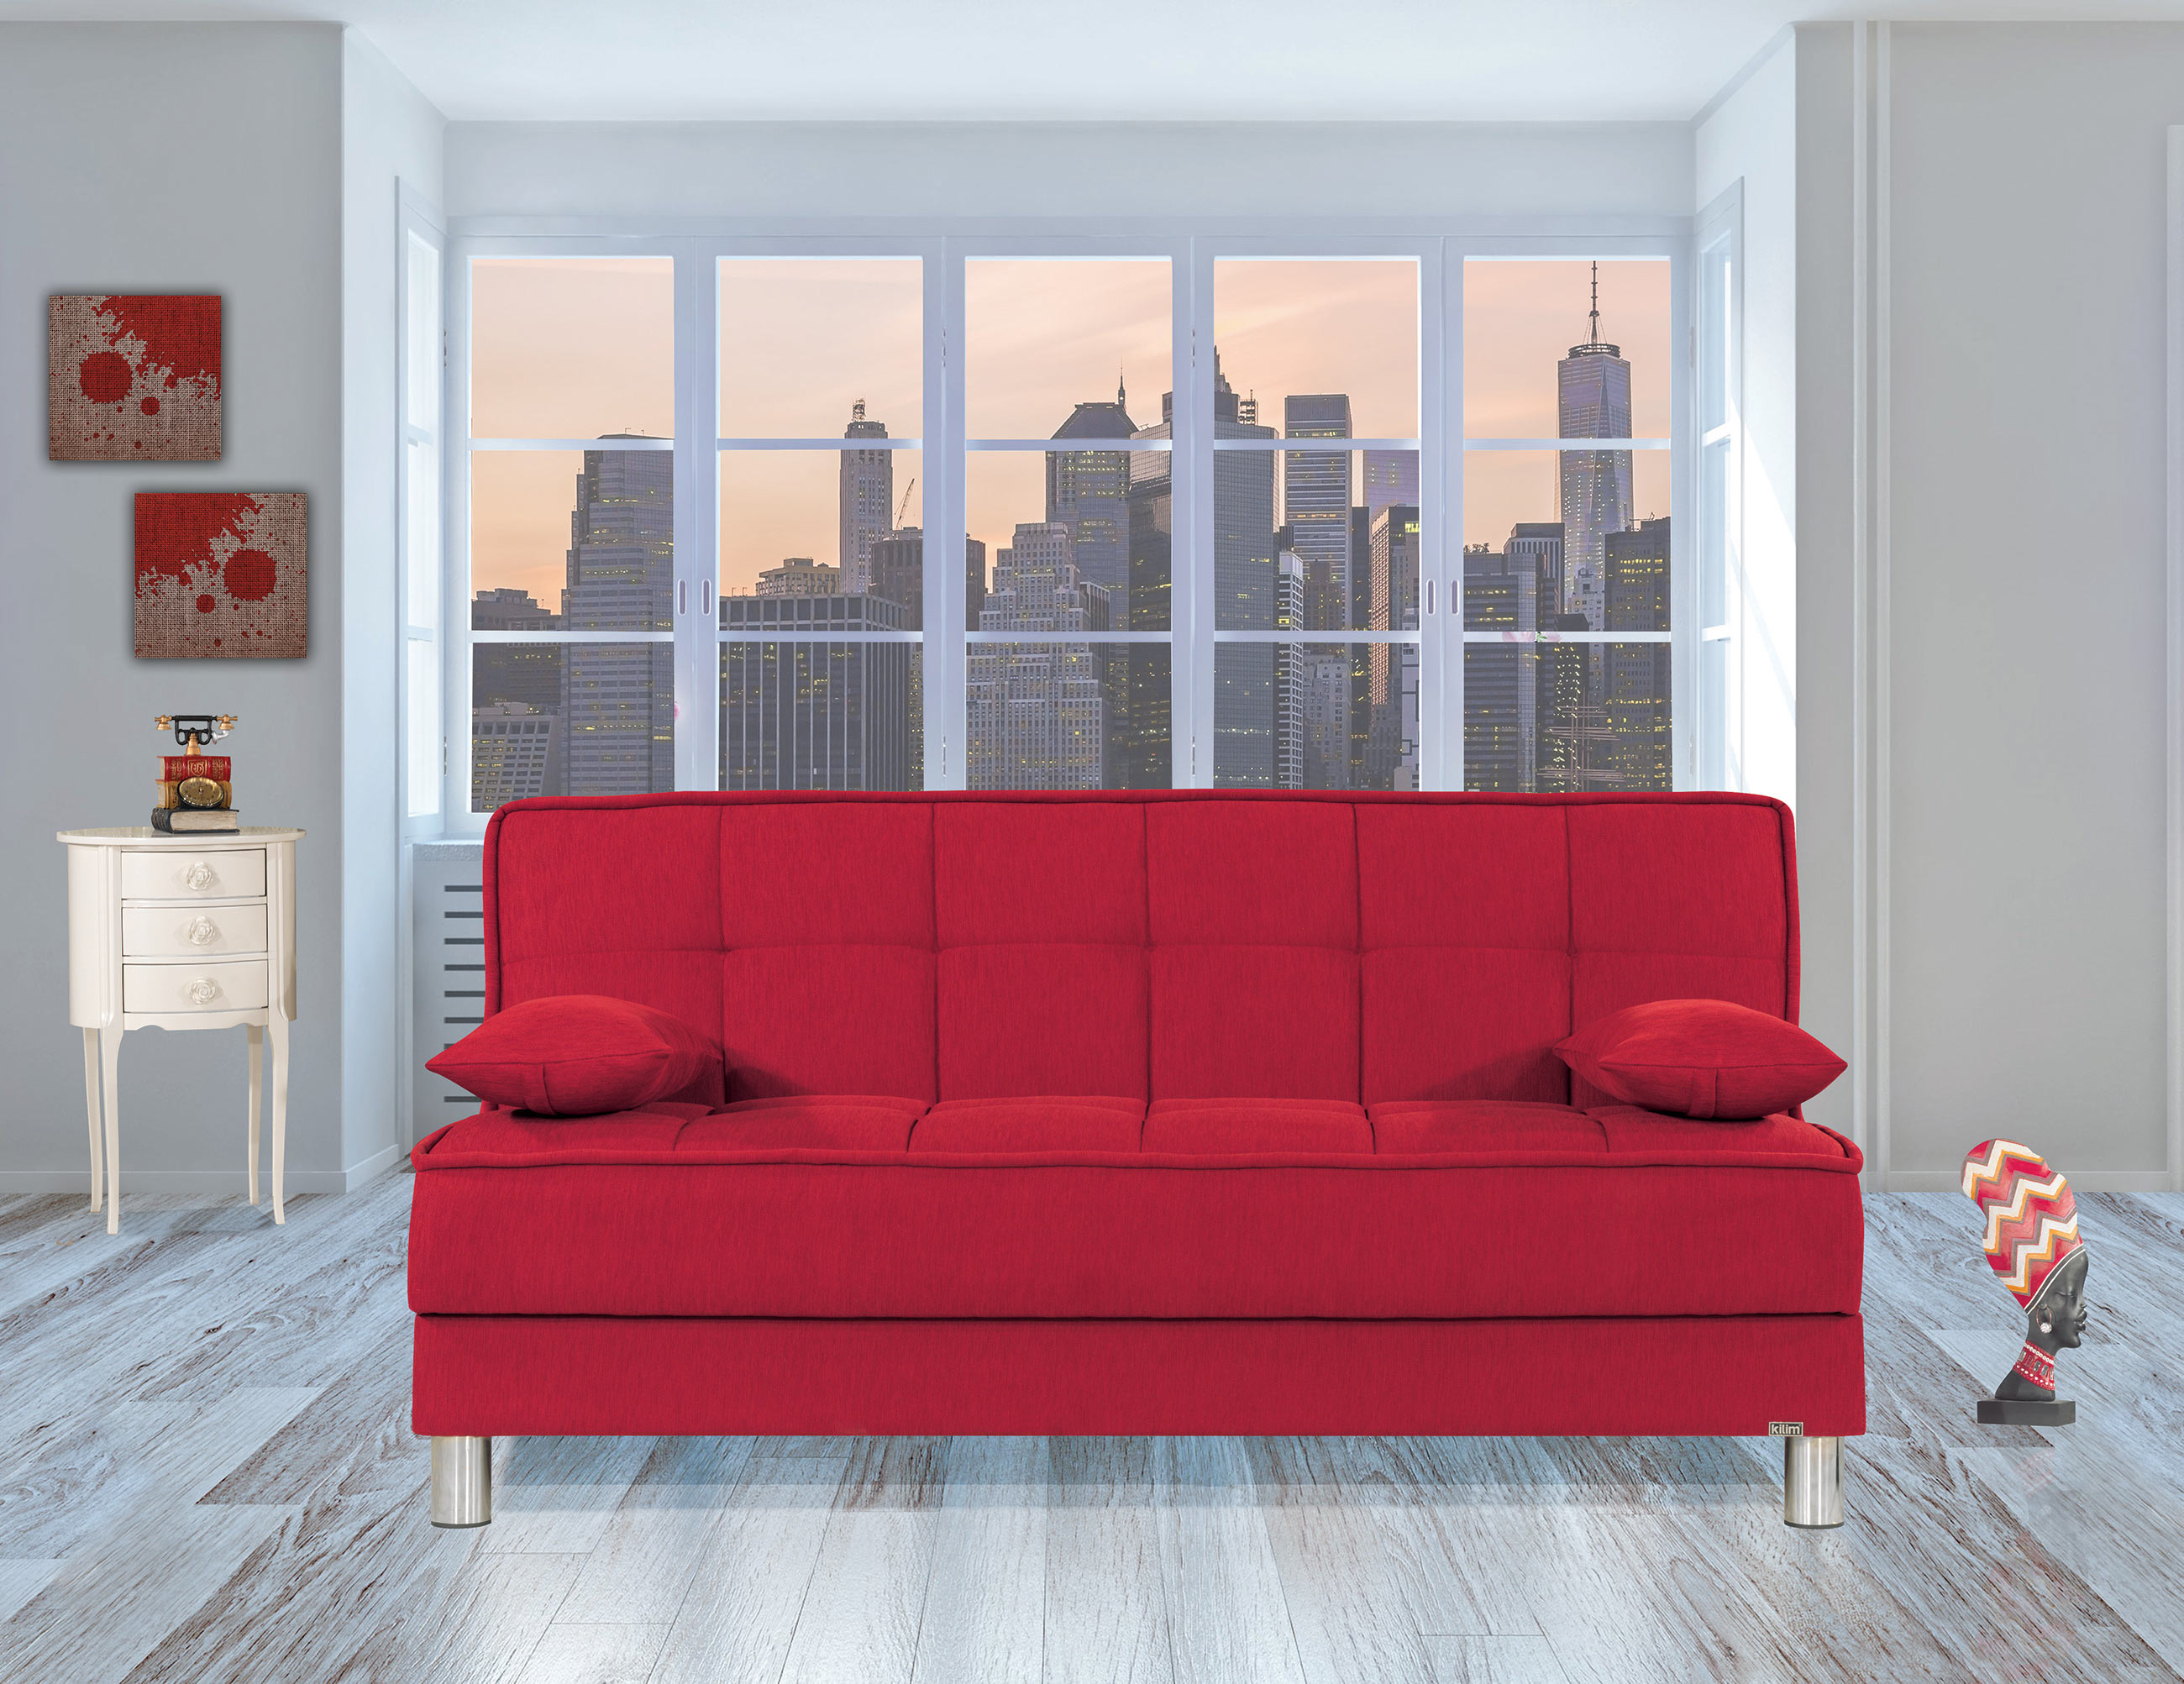 Smart Fit Red Convertible Sofa by Casamode